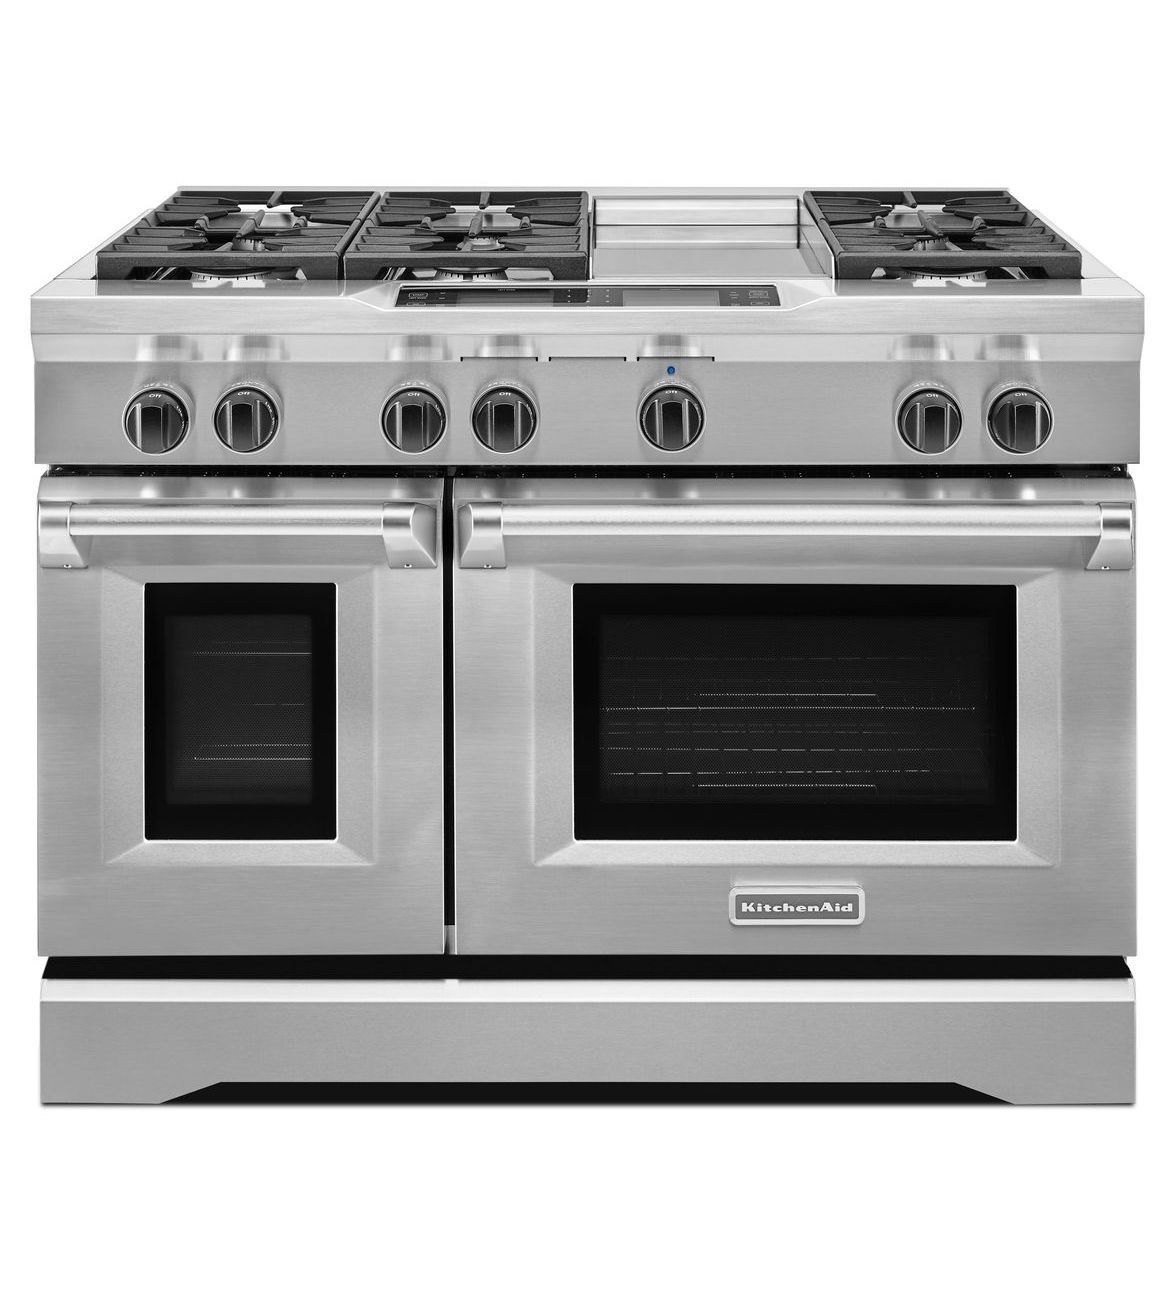 48 Inch 6 Burner With Steam Assist Oven, Dual Fuel Freestanding Range,  Commercial Style Kitchen Aid